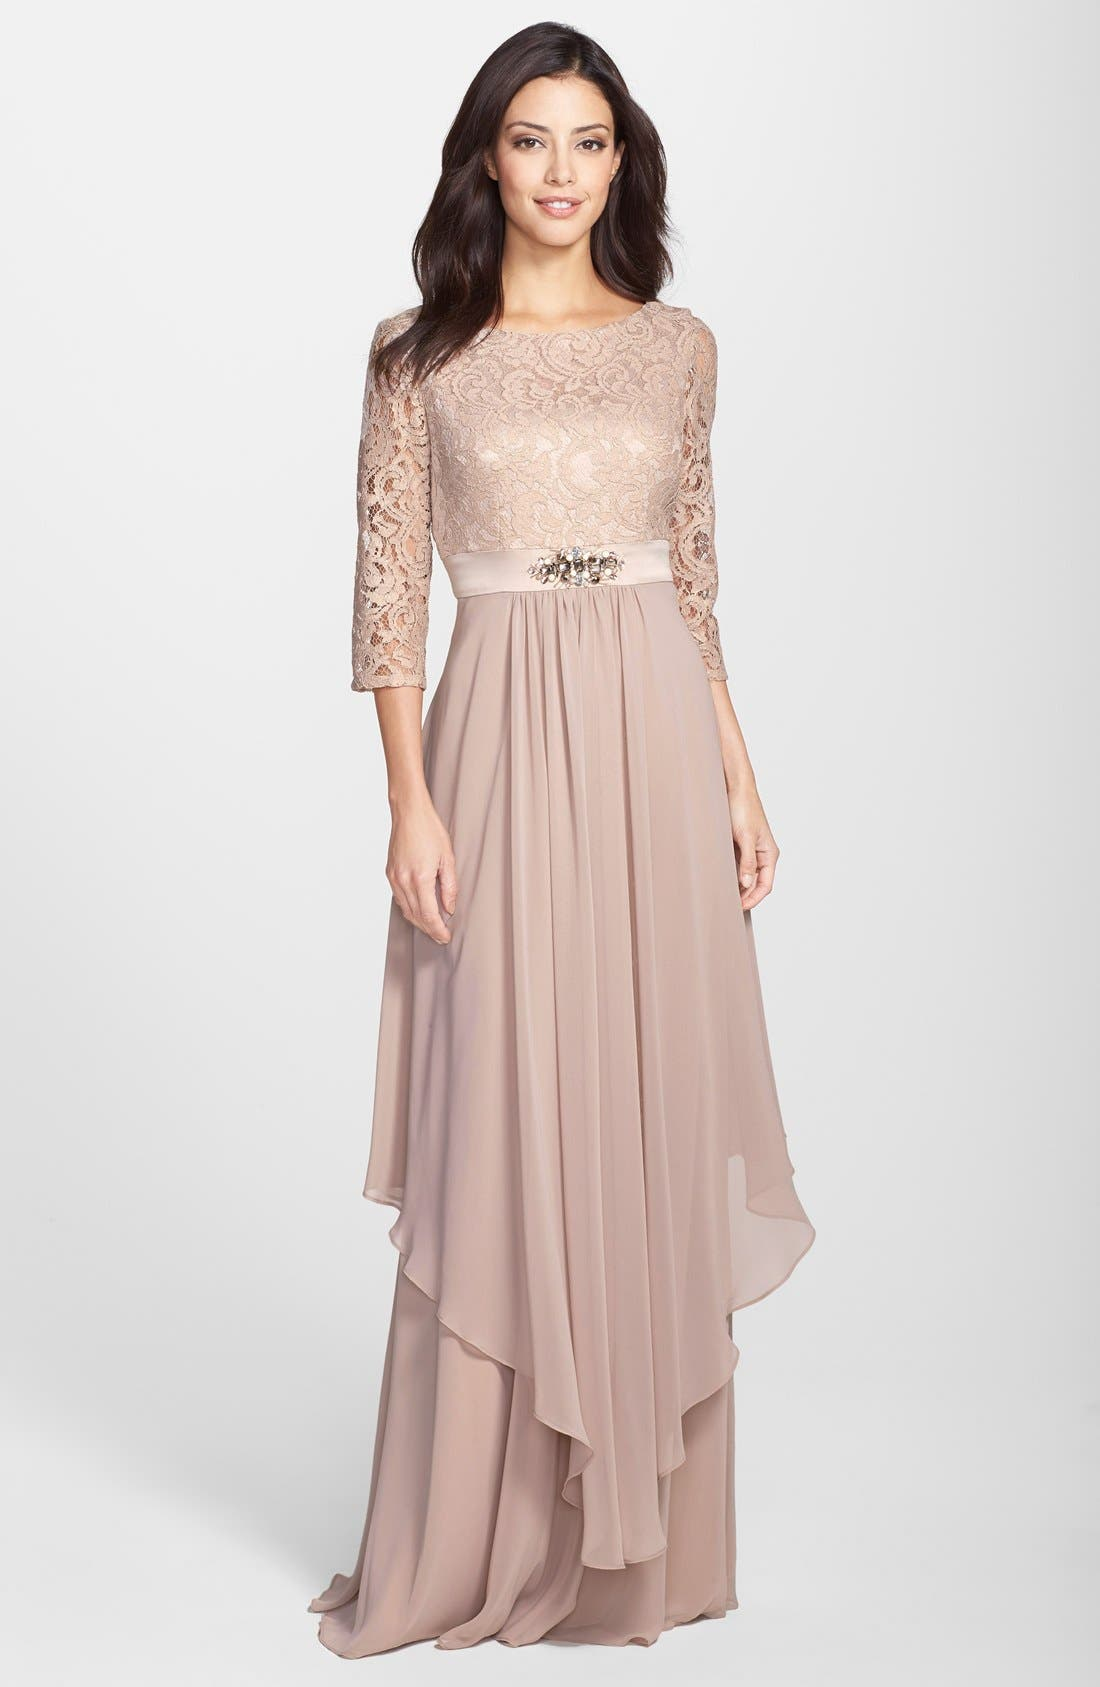 Embellished Lace & Chiffon Gown,                             Main thumbnail 1, color,                             256